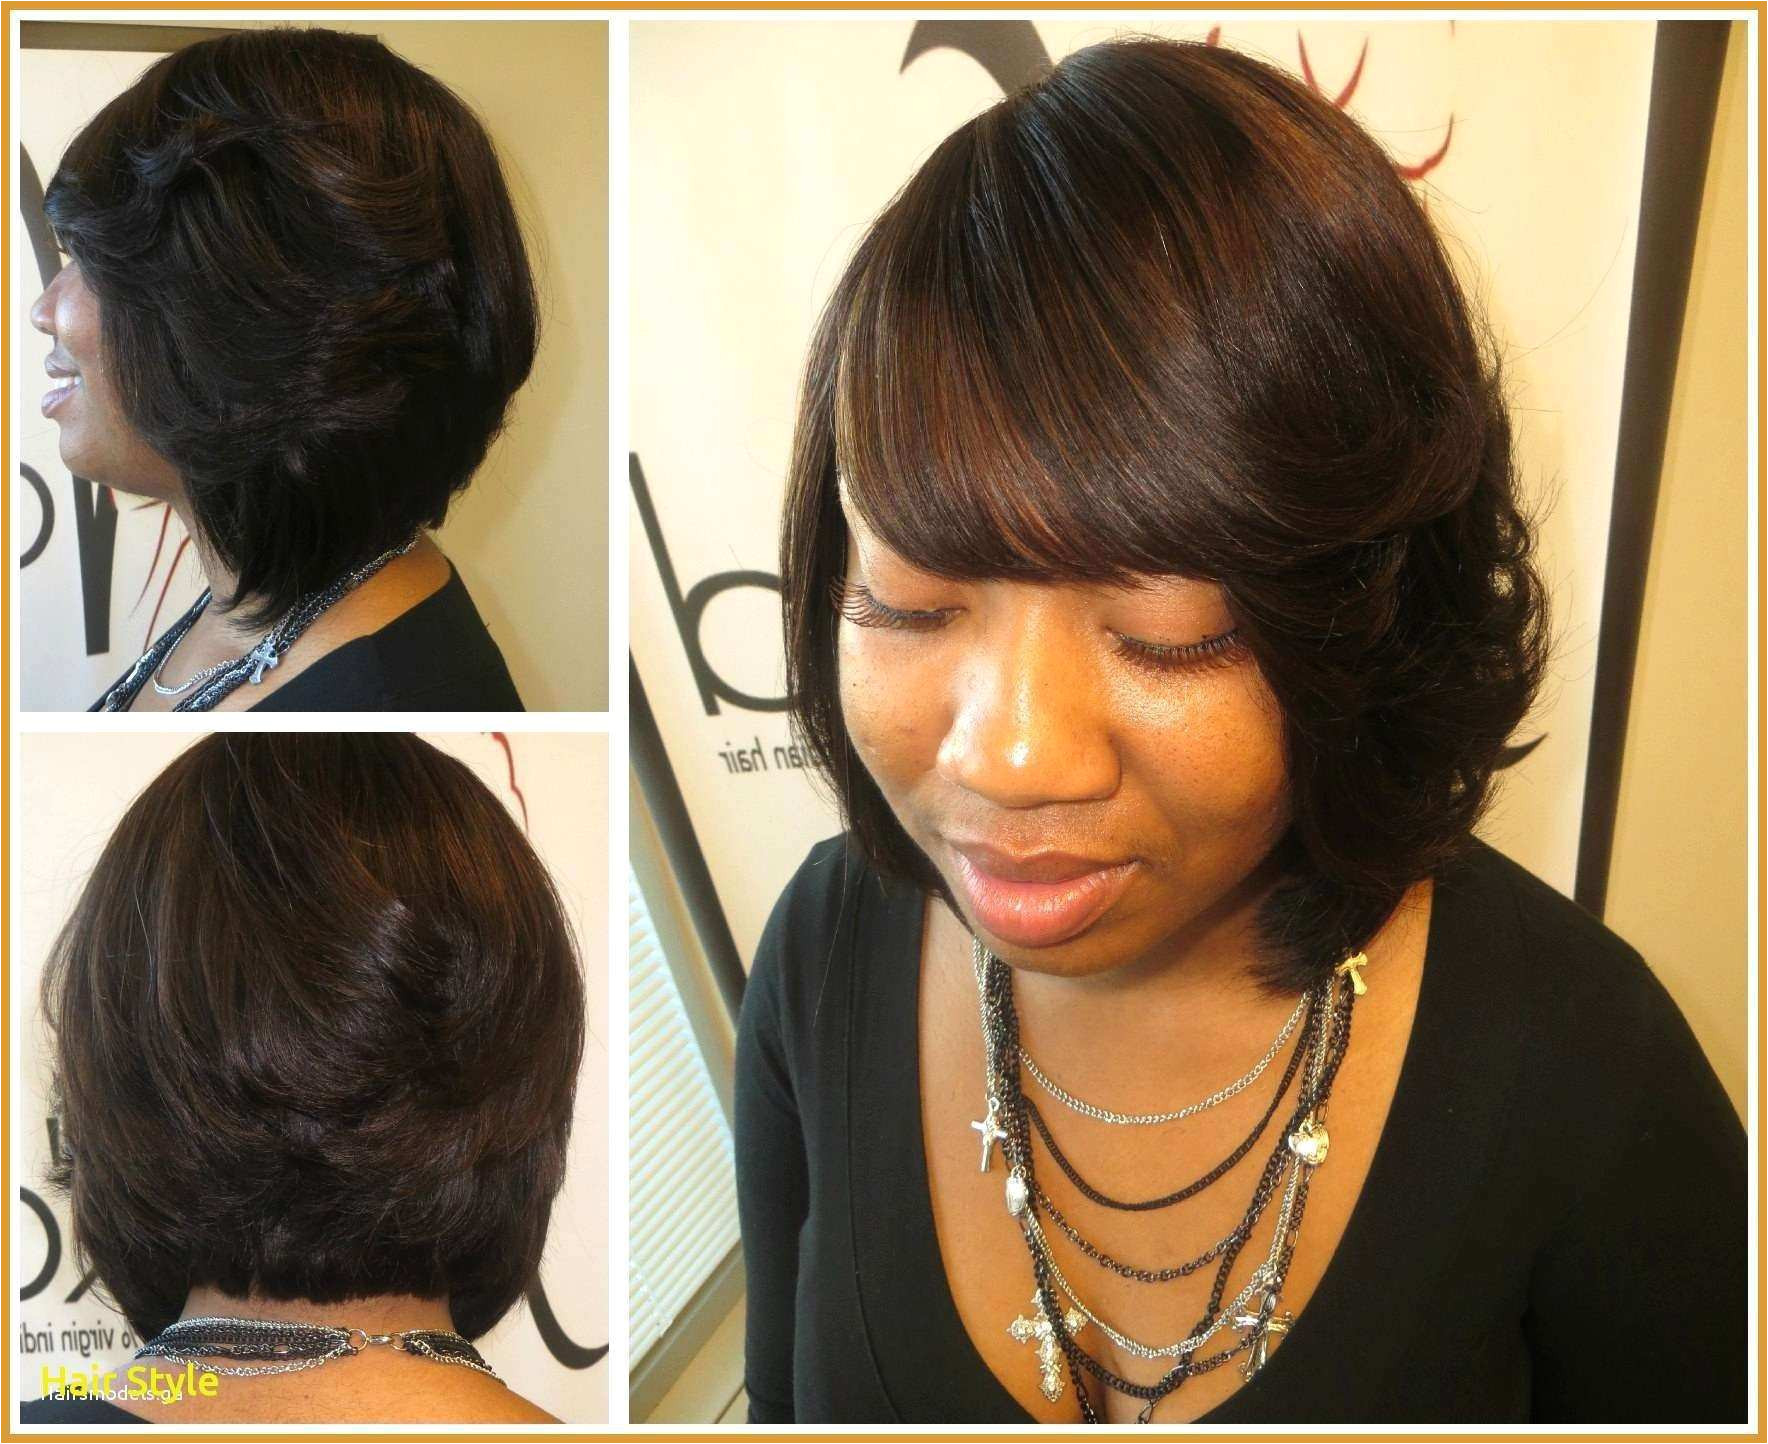 Awesome Short Hairstyles for Girls Luxury Awesome Short Hairstyles Little Girls Hardeeplive Awesome Short Hairstyles